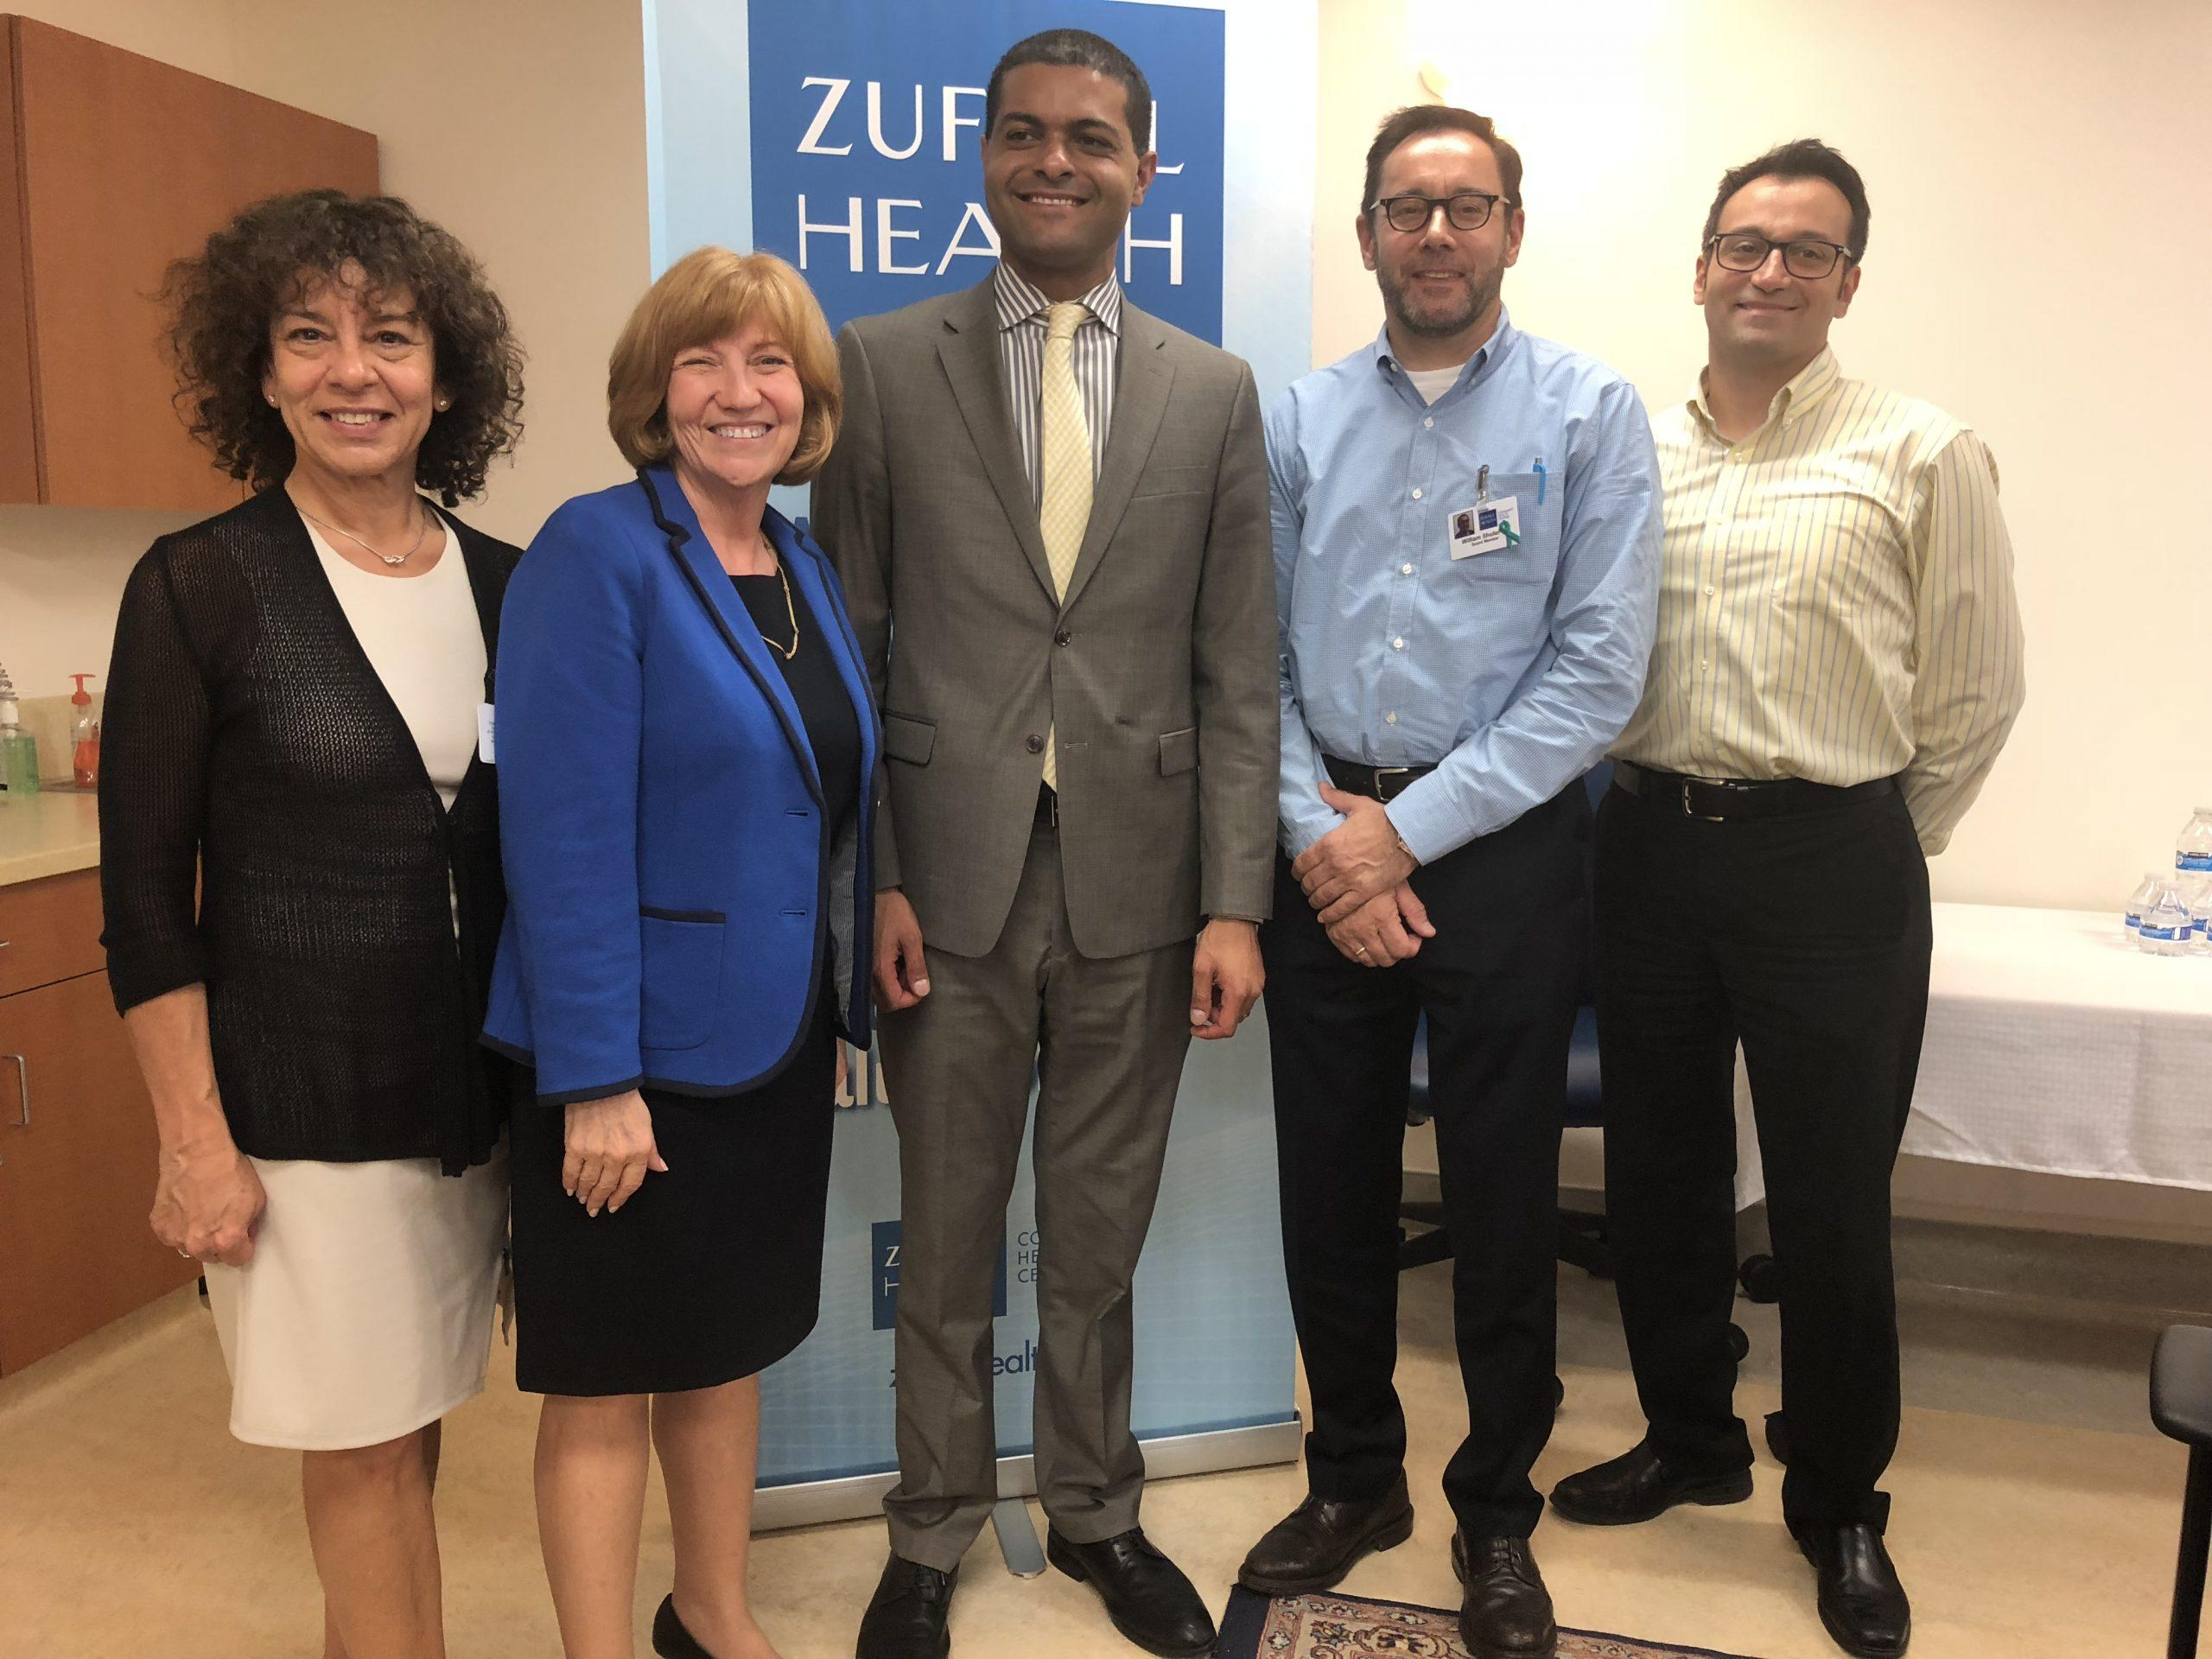 Photo of New Jersey's Health Commissioner posing with Zufall staff and Board